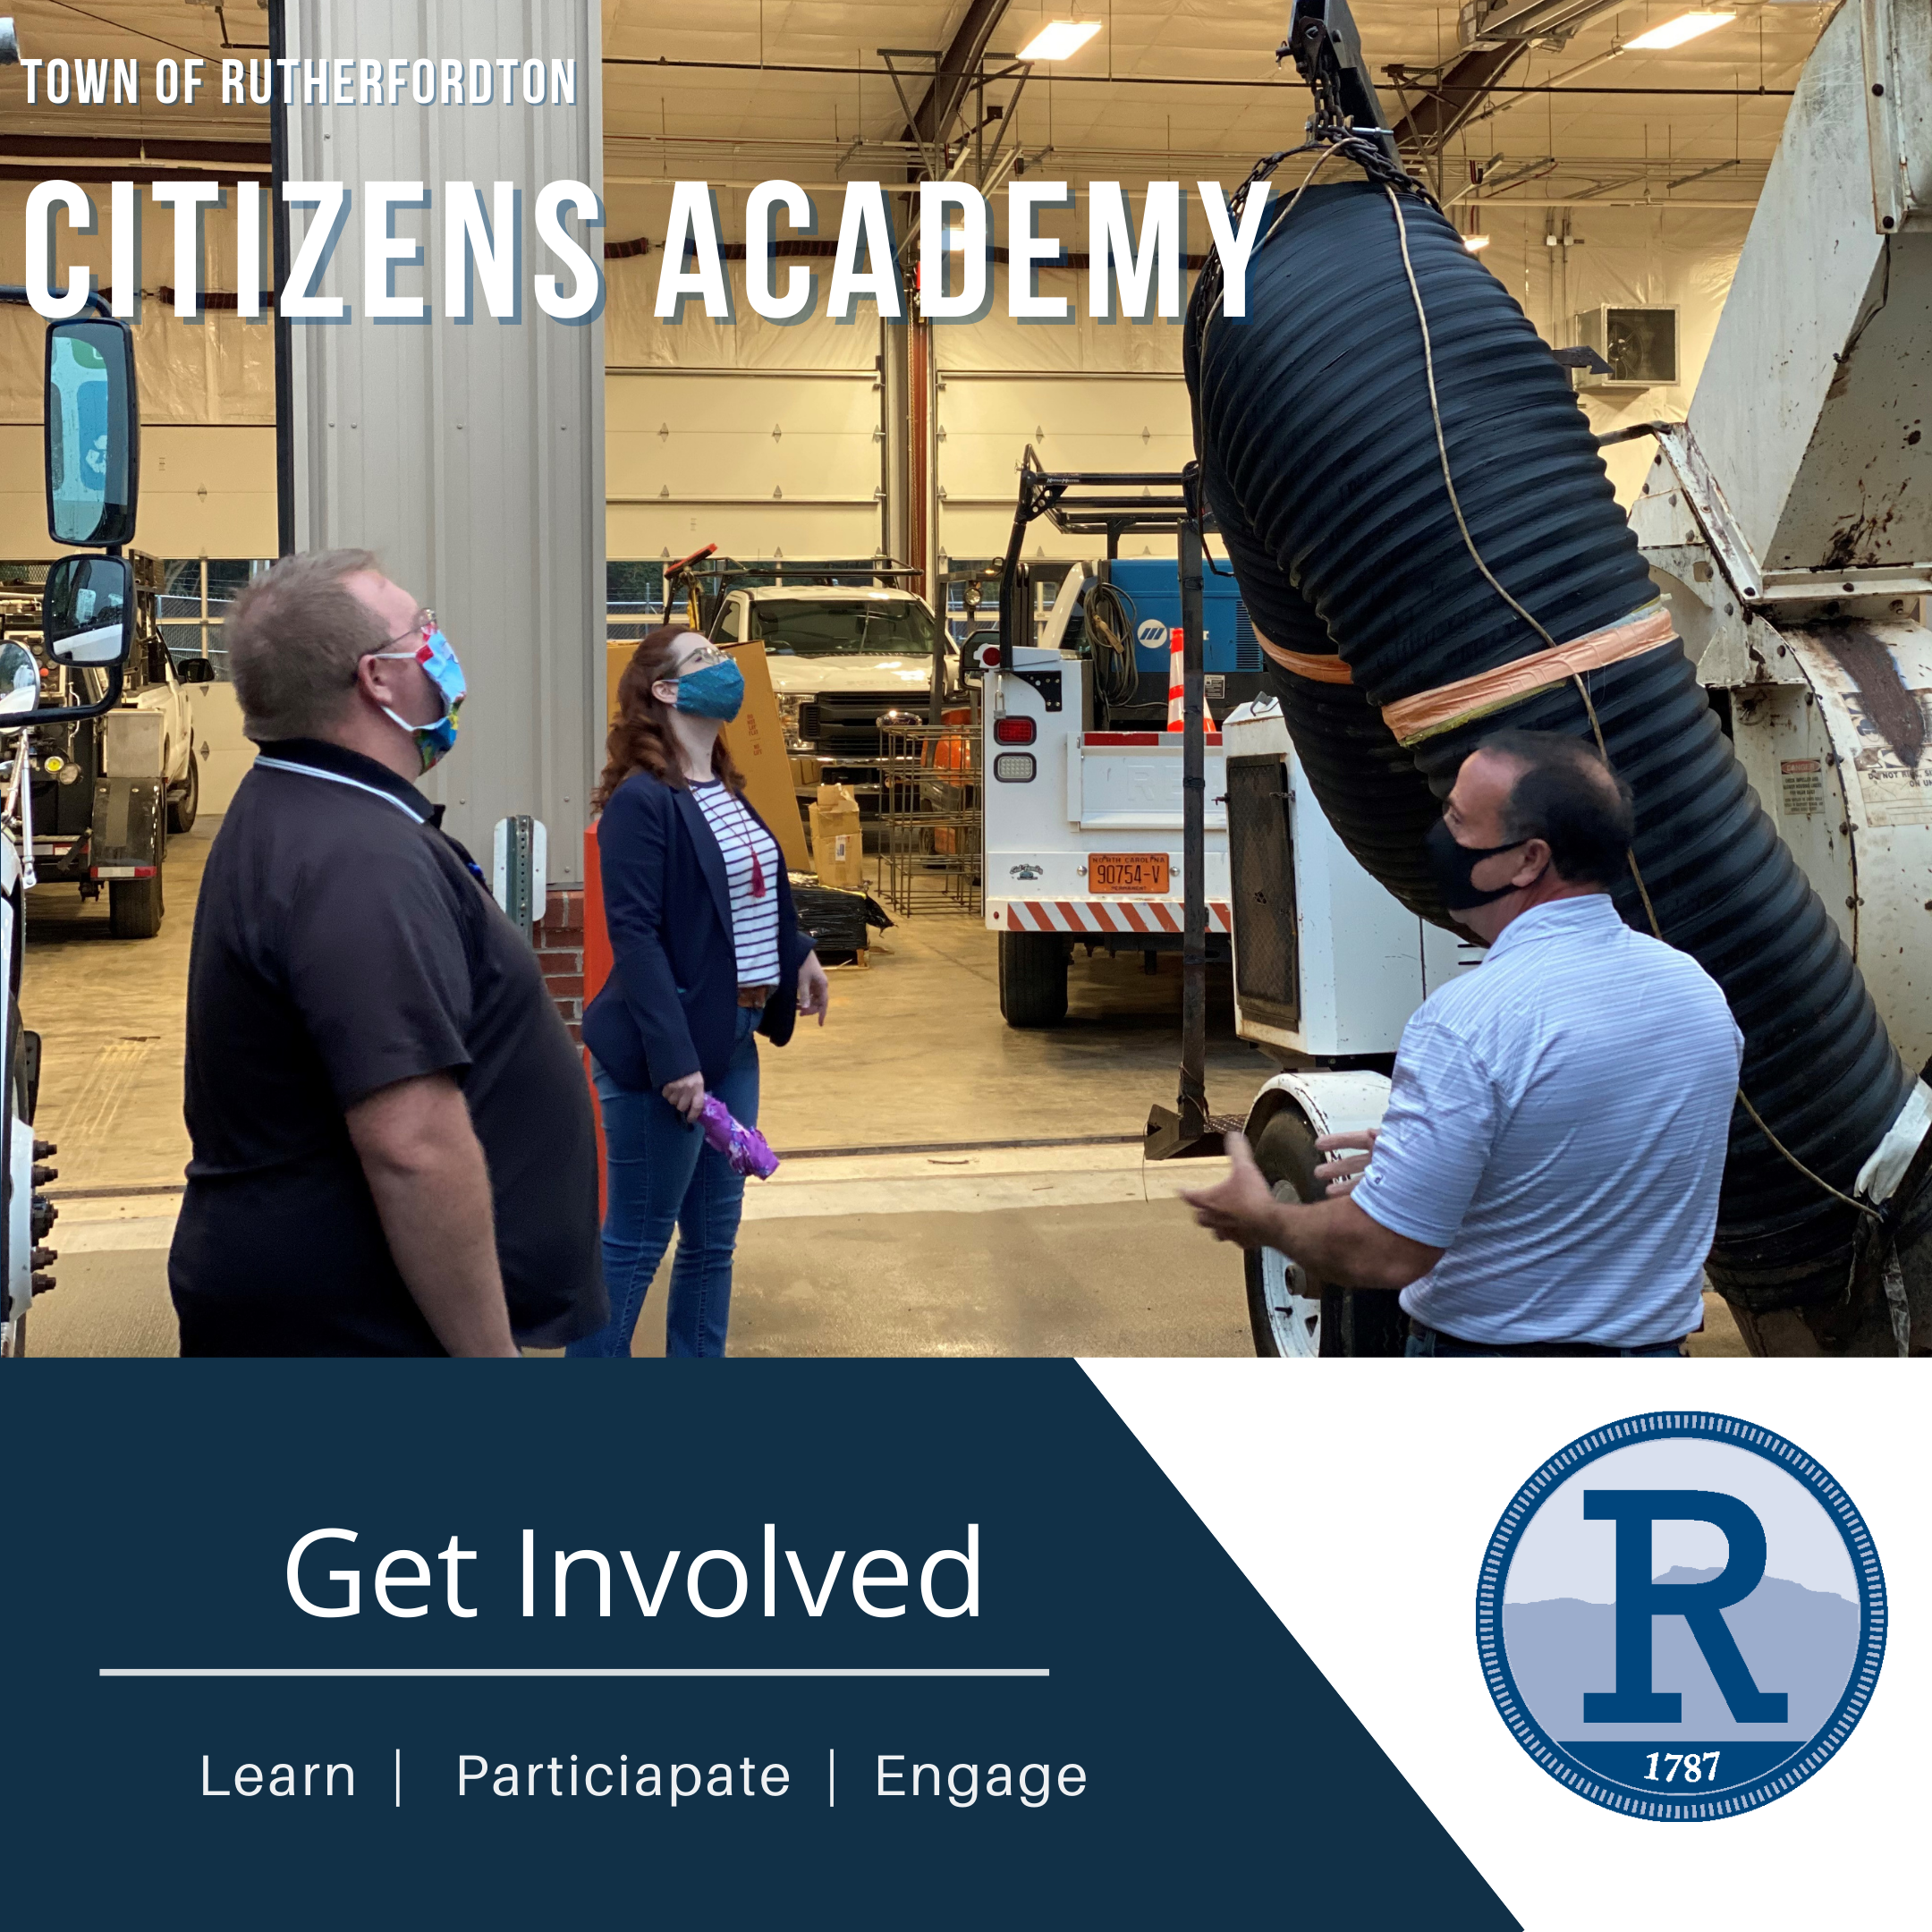 Rutherfordton Citizens Academy